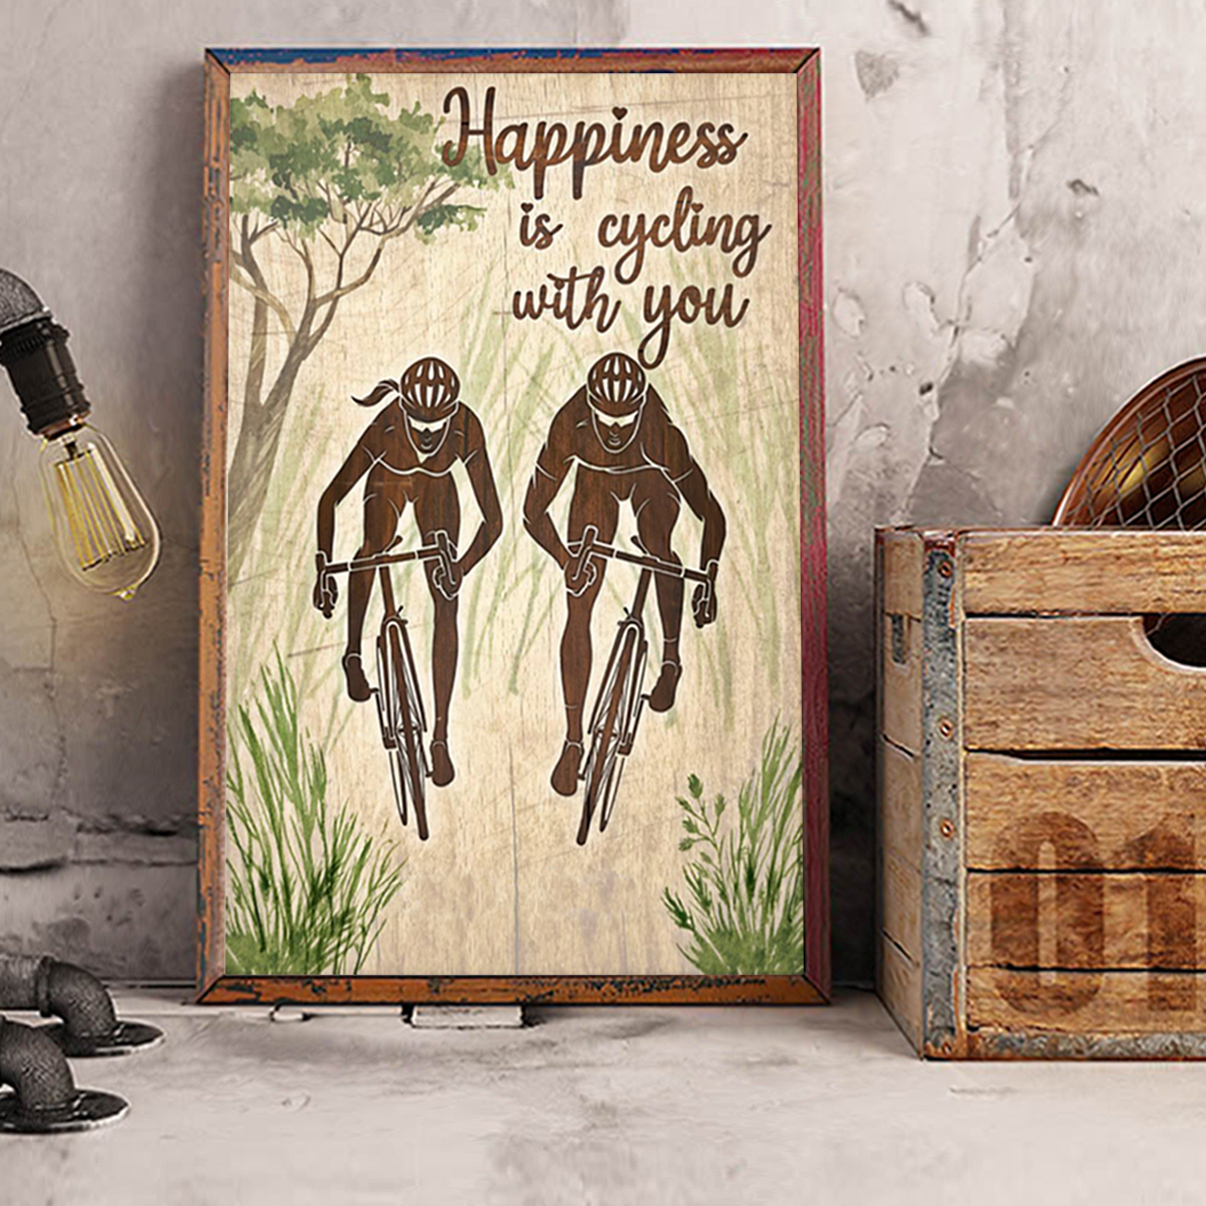 Personalized happiness is cycling with you poster A3